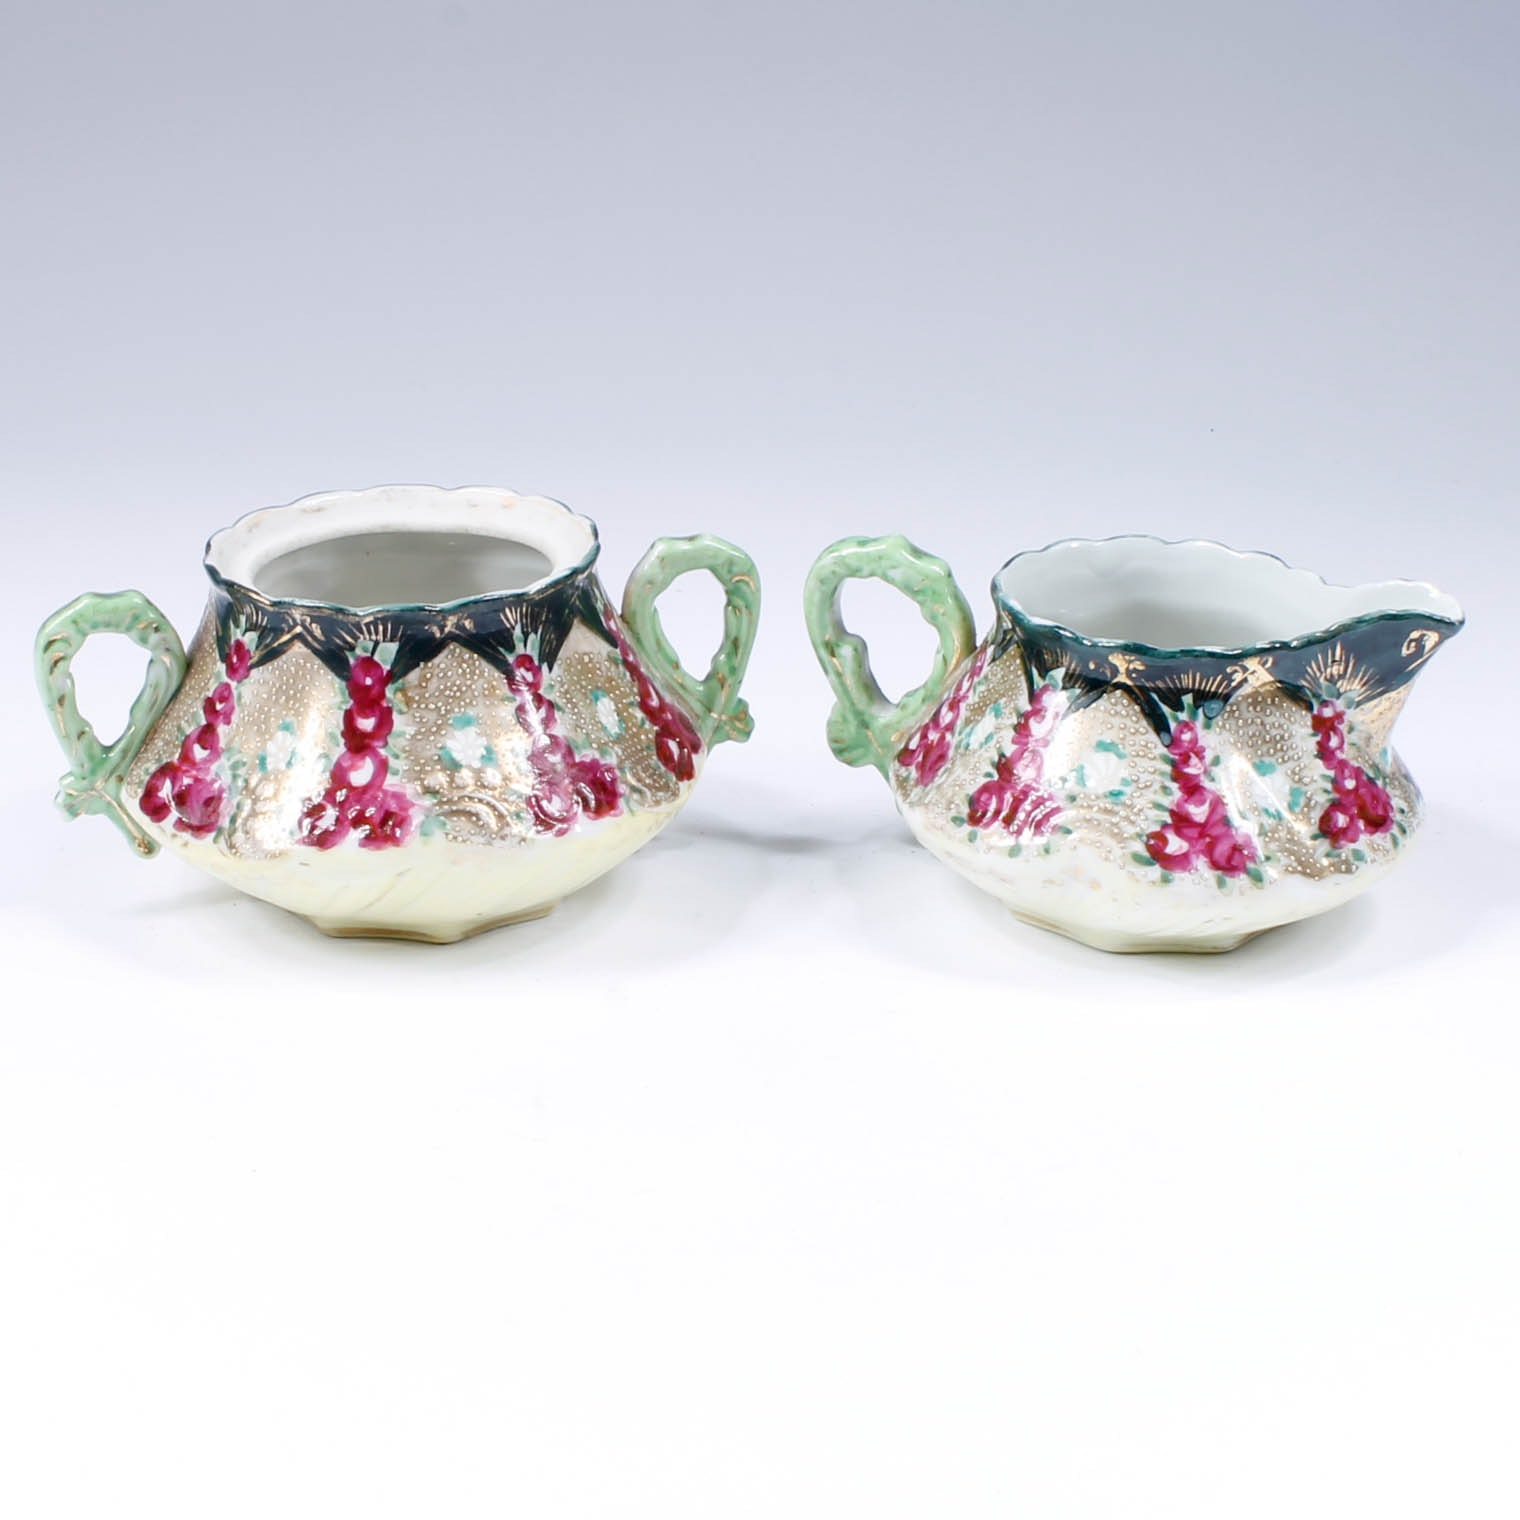 Vintage Hand-Painted Asian Creamer Pitcher and Sugar Bowl